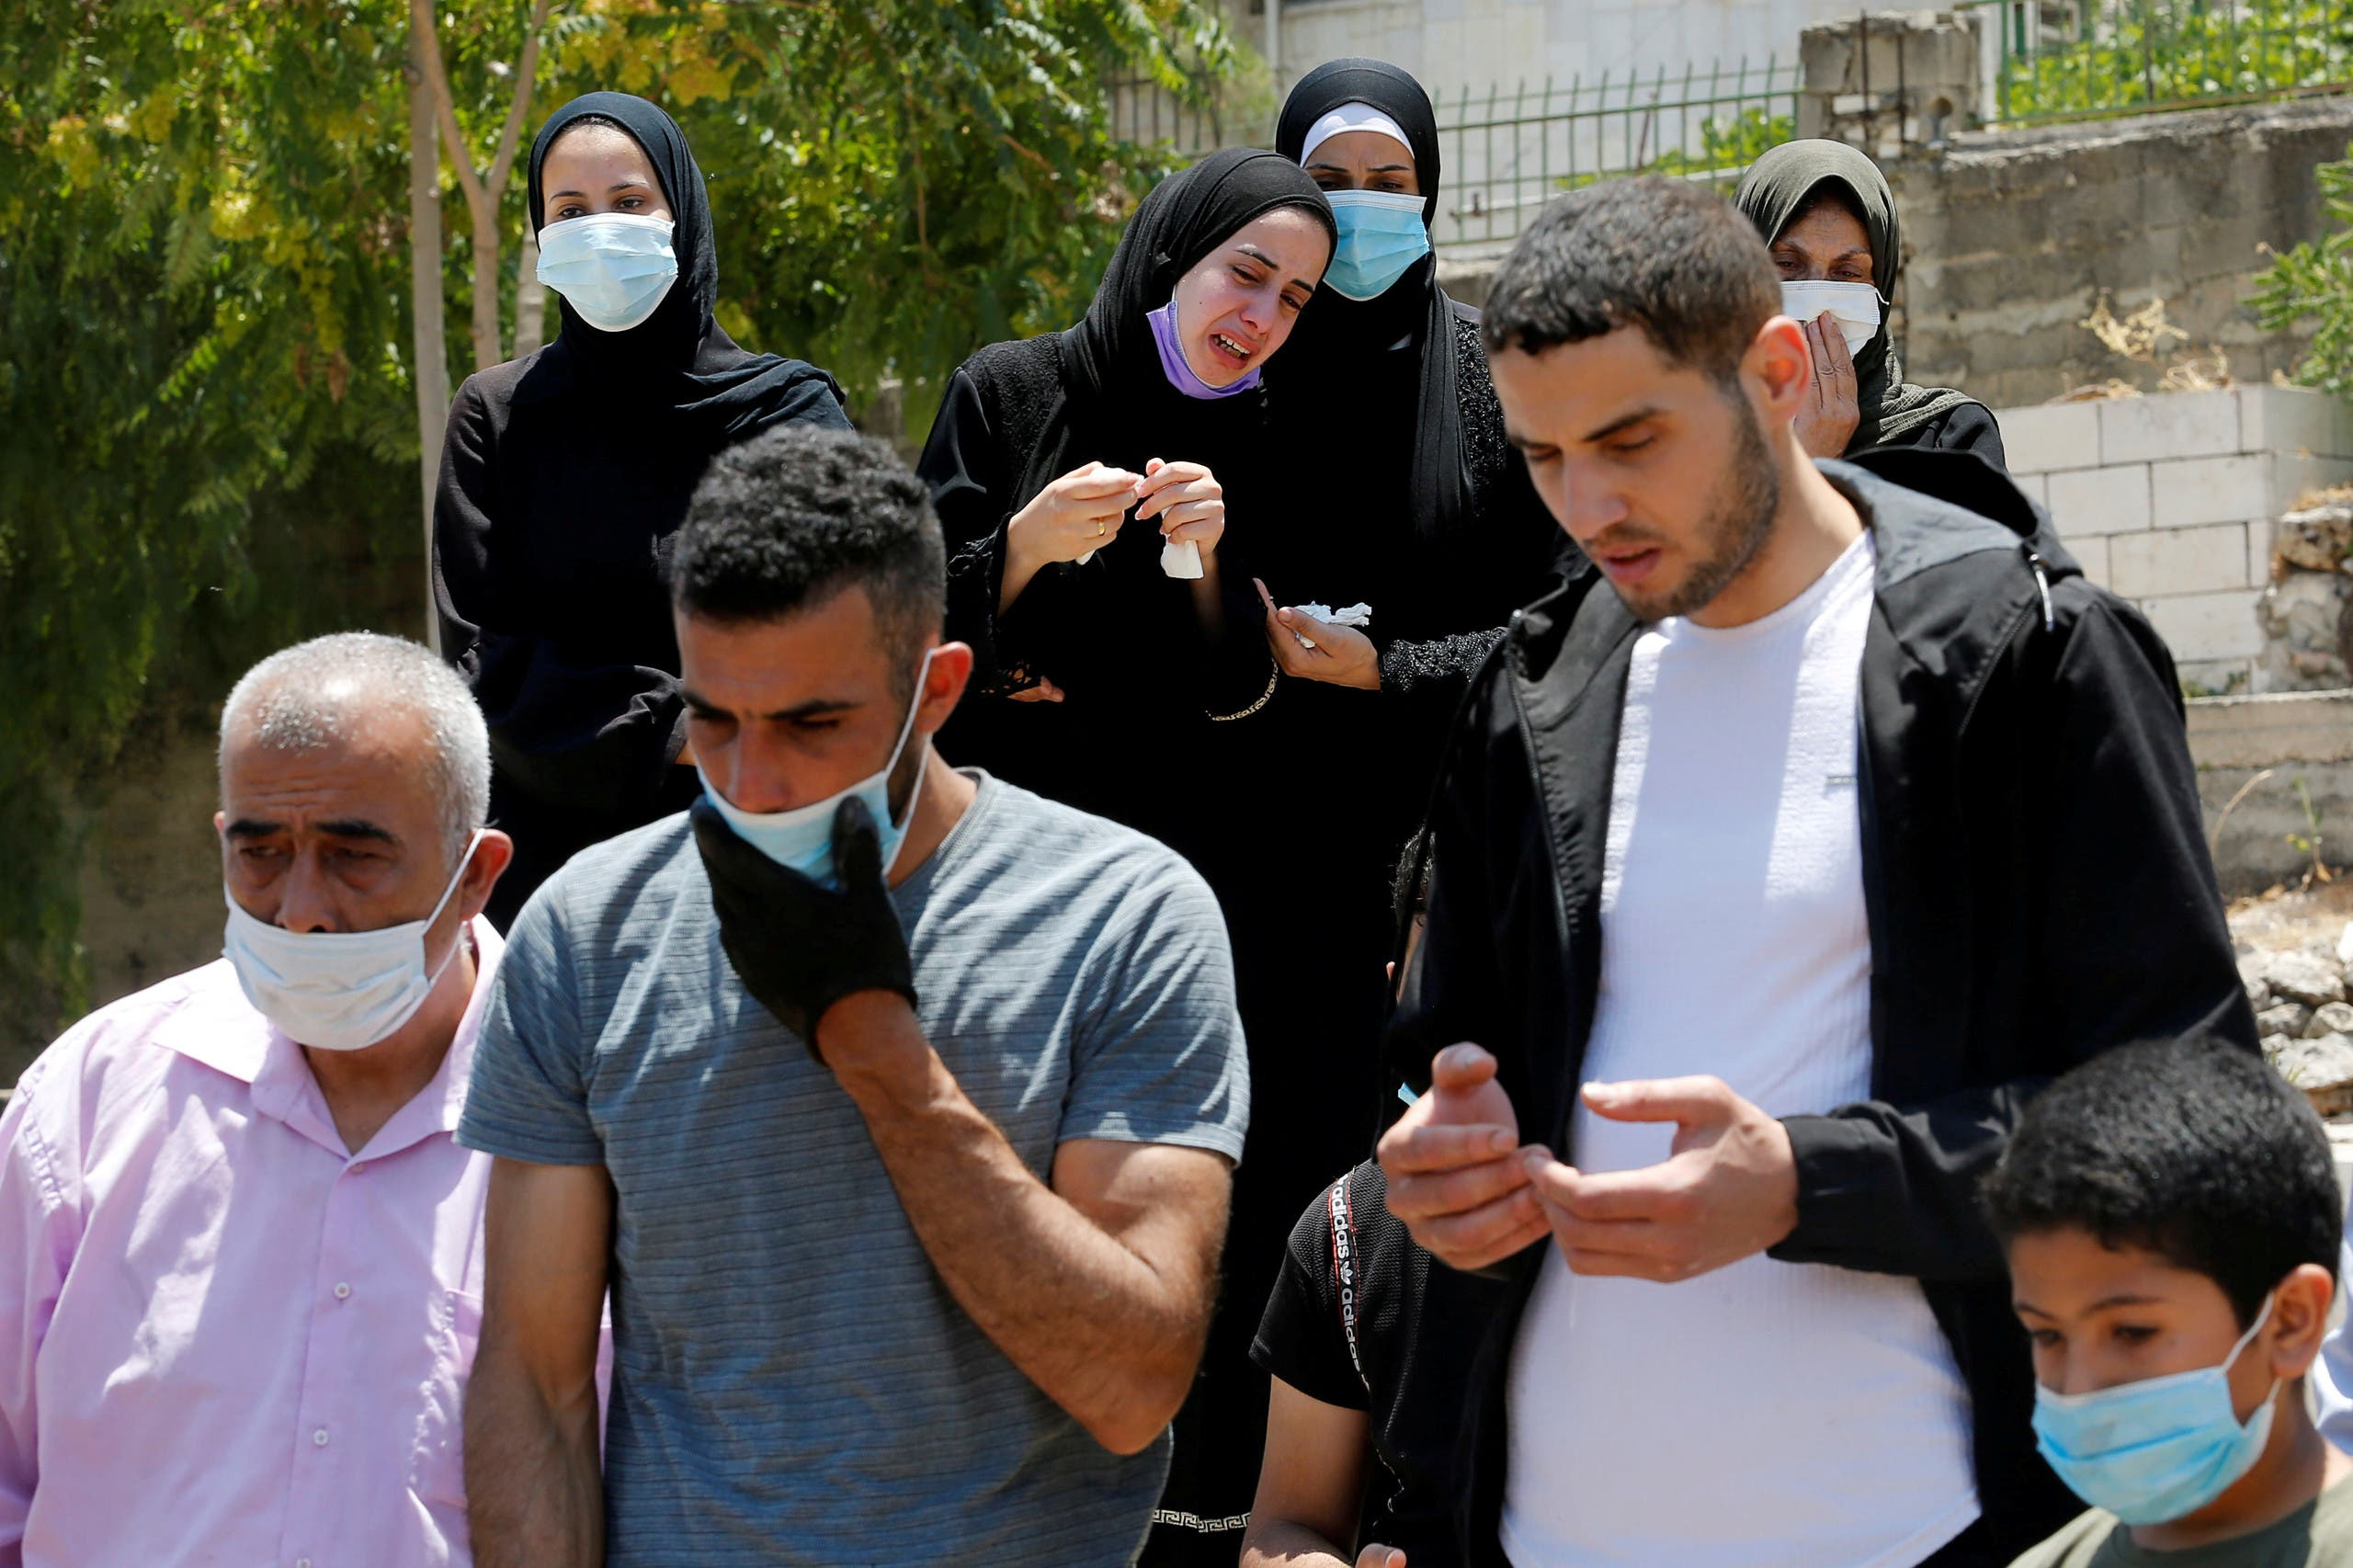 A relative mourns as others attend the burial of a Palestinian man who has died after contracting the coronavirus disease (COVID-19), in a cemetery in Hebron in the Israeli-occupied West Bank July 5, 2020. (Reuters/Mussa Qawasma)